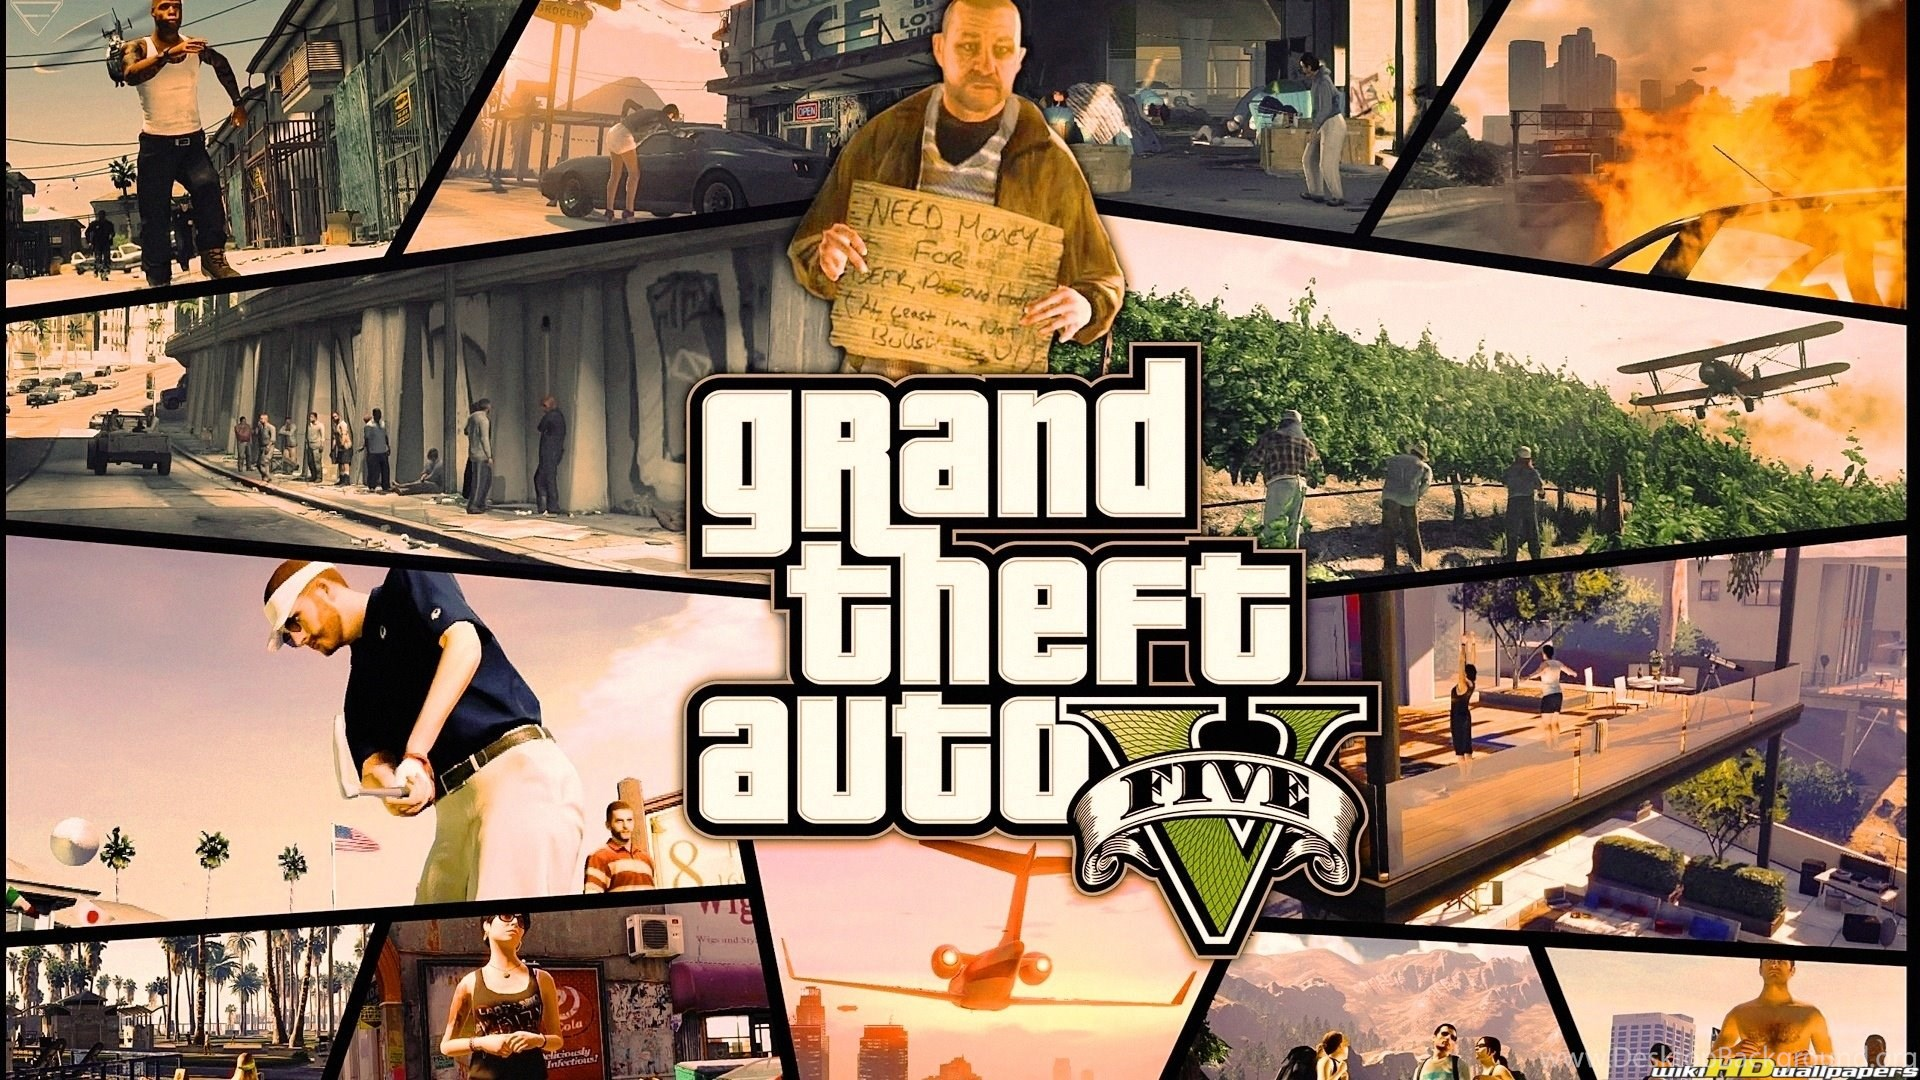 Grand Theft Auto San Andreas Hd Wallpapers Desktop Background